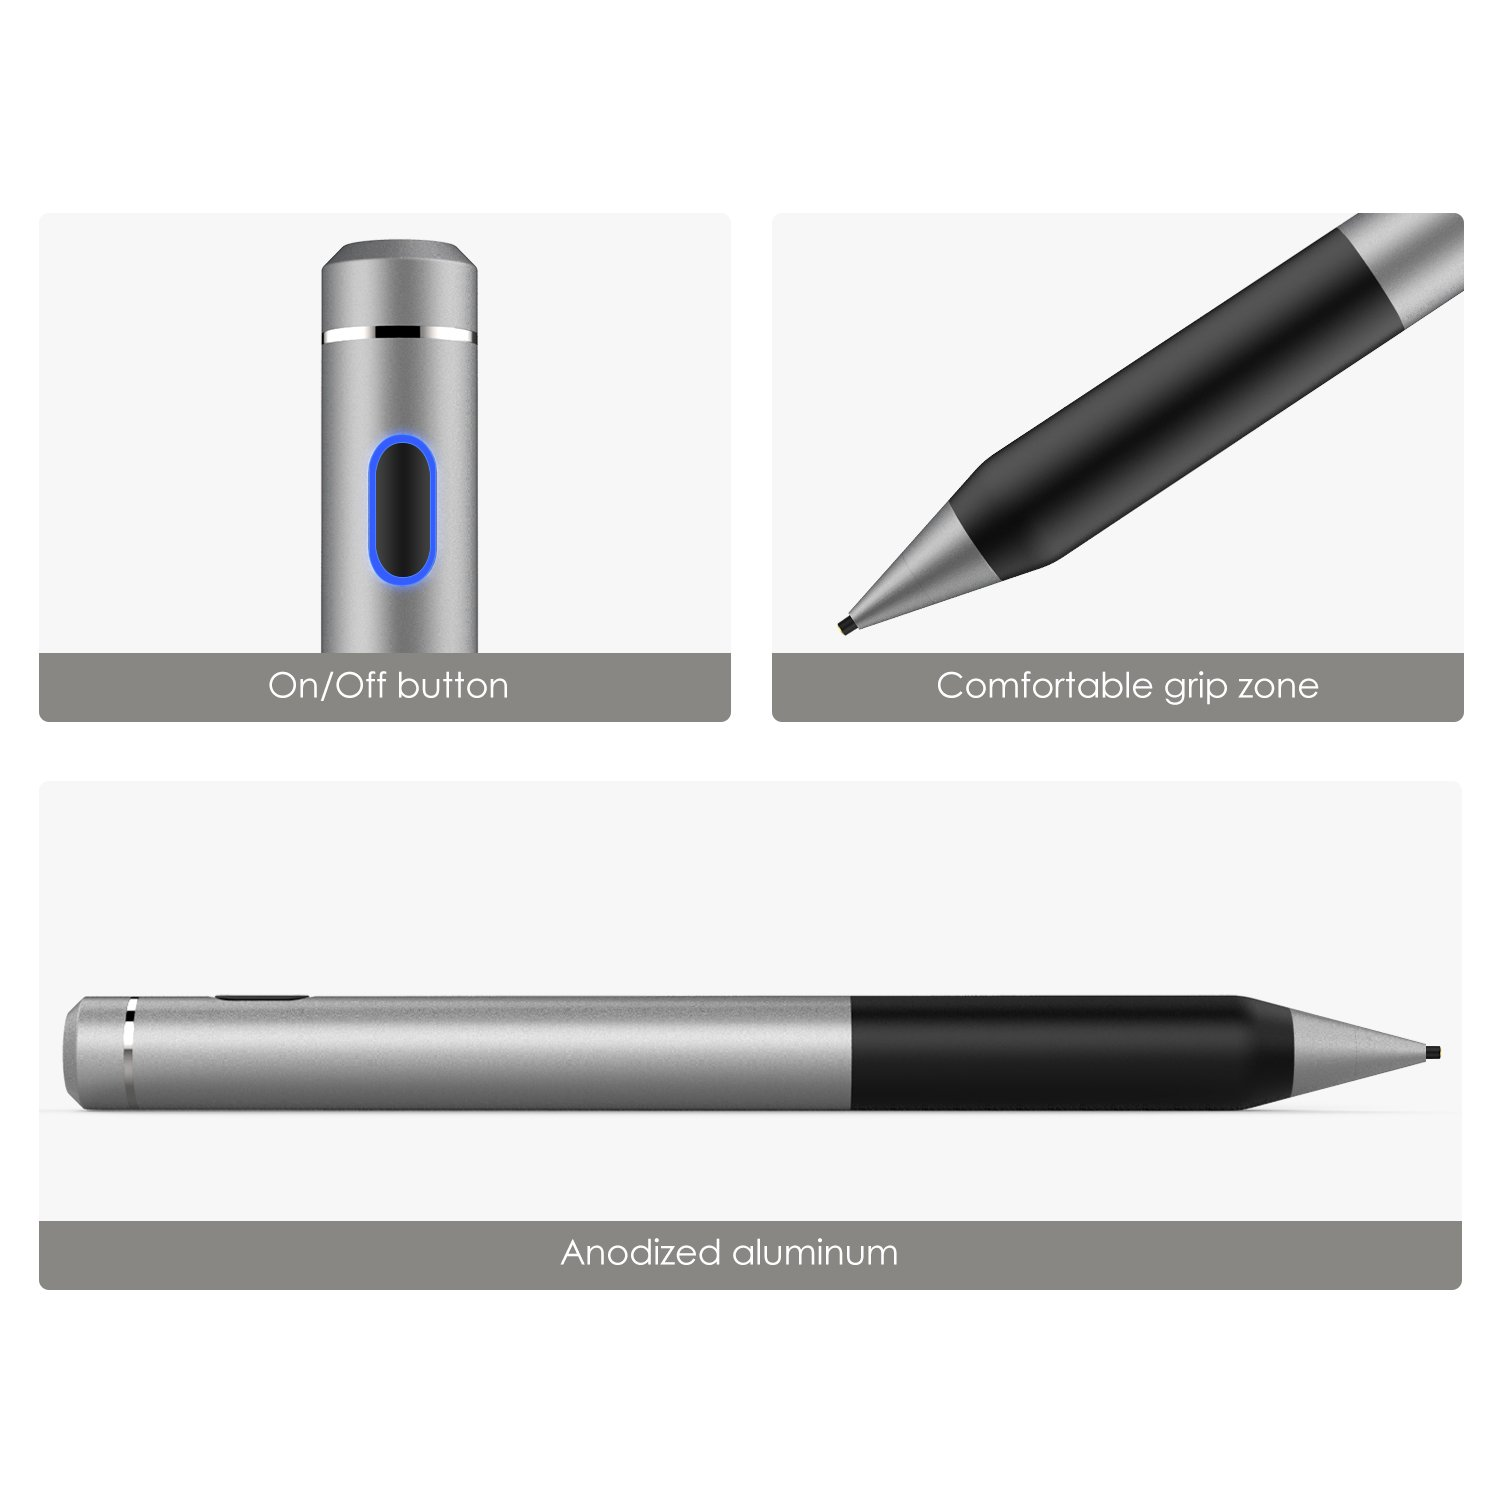 MoKo Active Stylus Pen, High Precision and Sensitivity Point 1.5mm Capacitive Stylus, for Touch Screen Devices Tablet/Smartphone iPhone X/ 8/8 Plus, iPad, Samsung Galaxy S9/ S9 Plus (Dark Gray) by MoKo (Image #6)